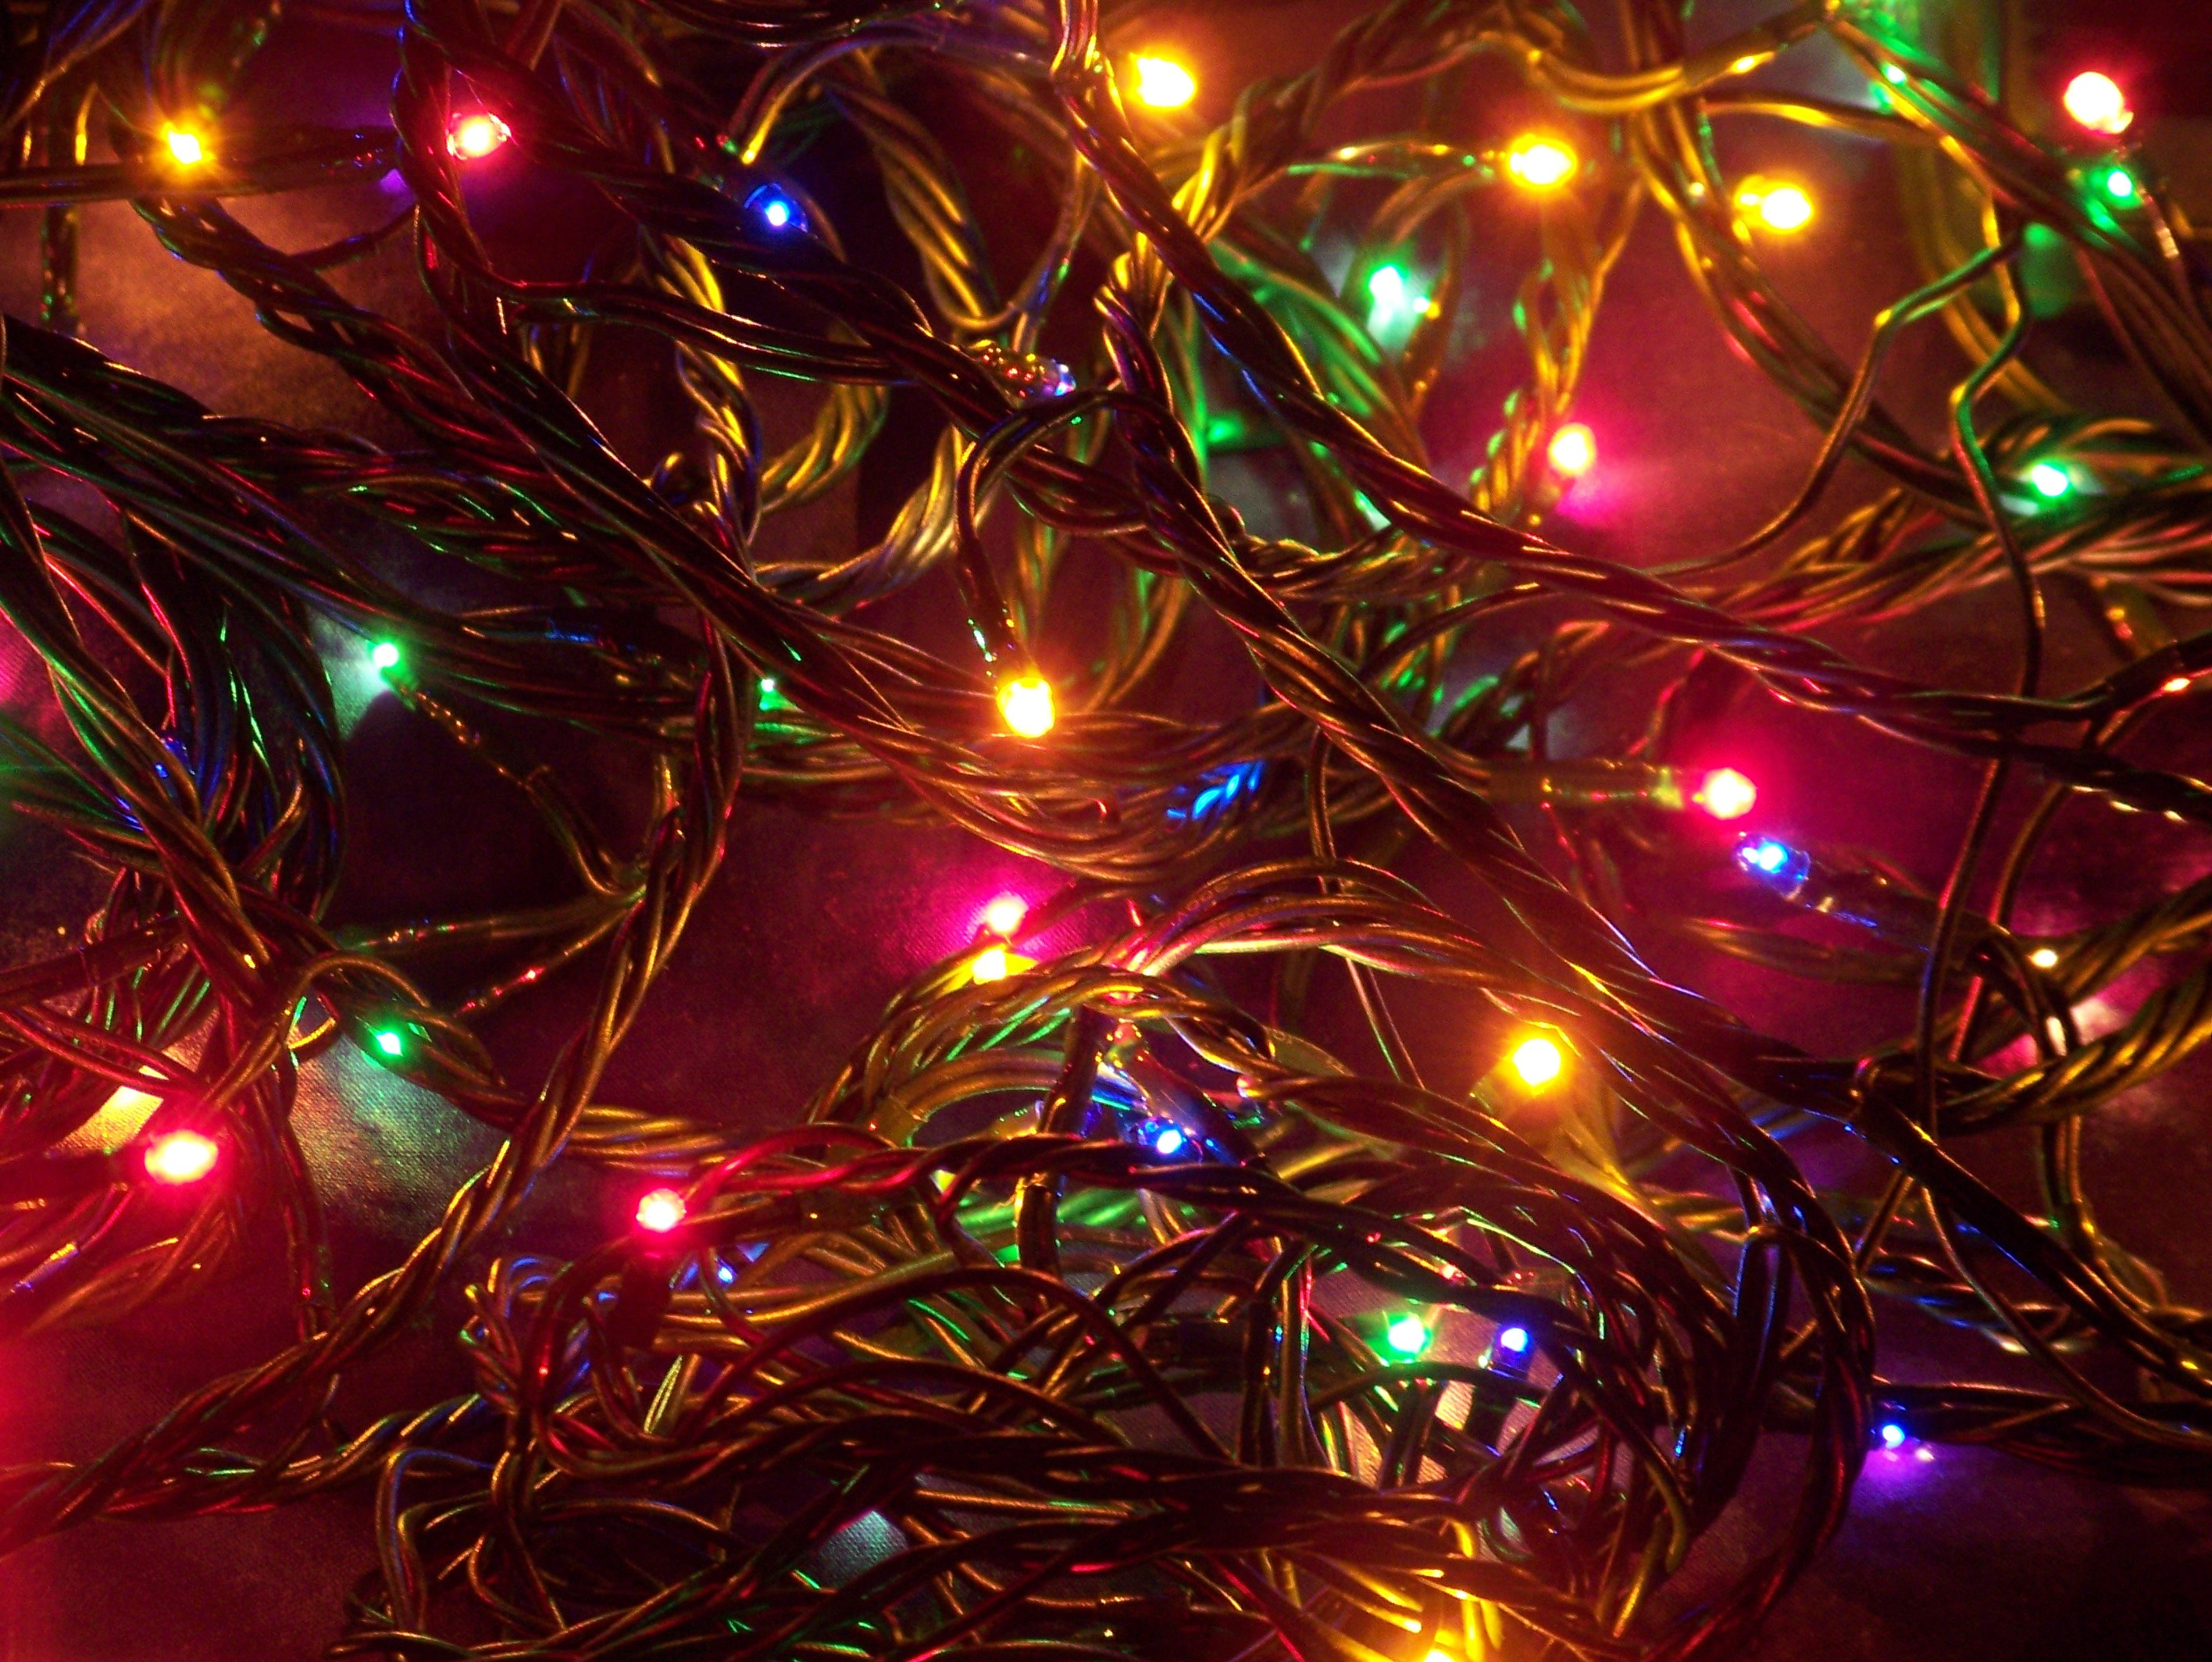 2832x2128 Find this Pin and more on christmas by melodystinnett5. Collection of  beautiful Christmas lights wallpapers.